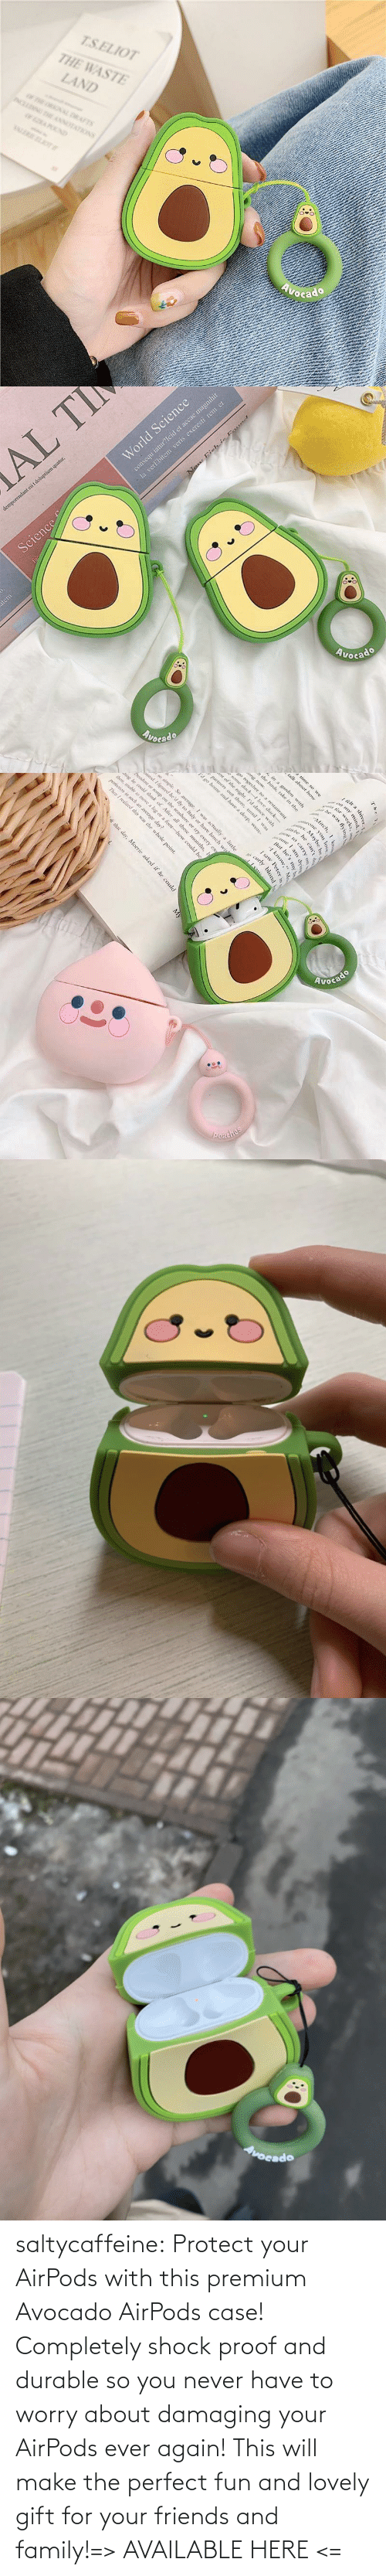 Family, Friends, and Tumblr: saltycaffeine:  Protect your AirPods with this premium Avocado AirPods case! Completely shock proof and durable so you never have to worry about damaging your AirPods ever again! This will make the perfect fun and lovely gift for your friends and family!=> AVAILABLE HERE <=